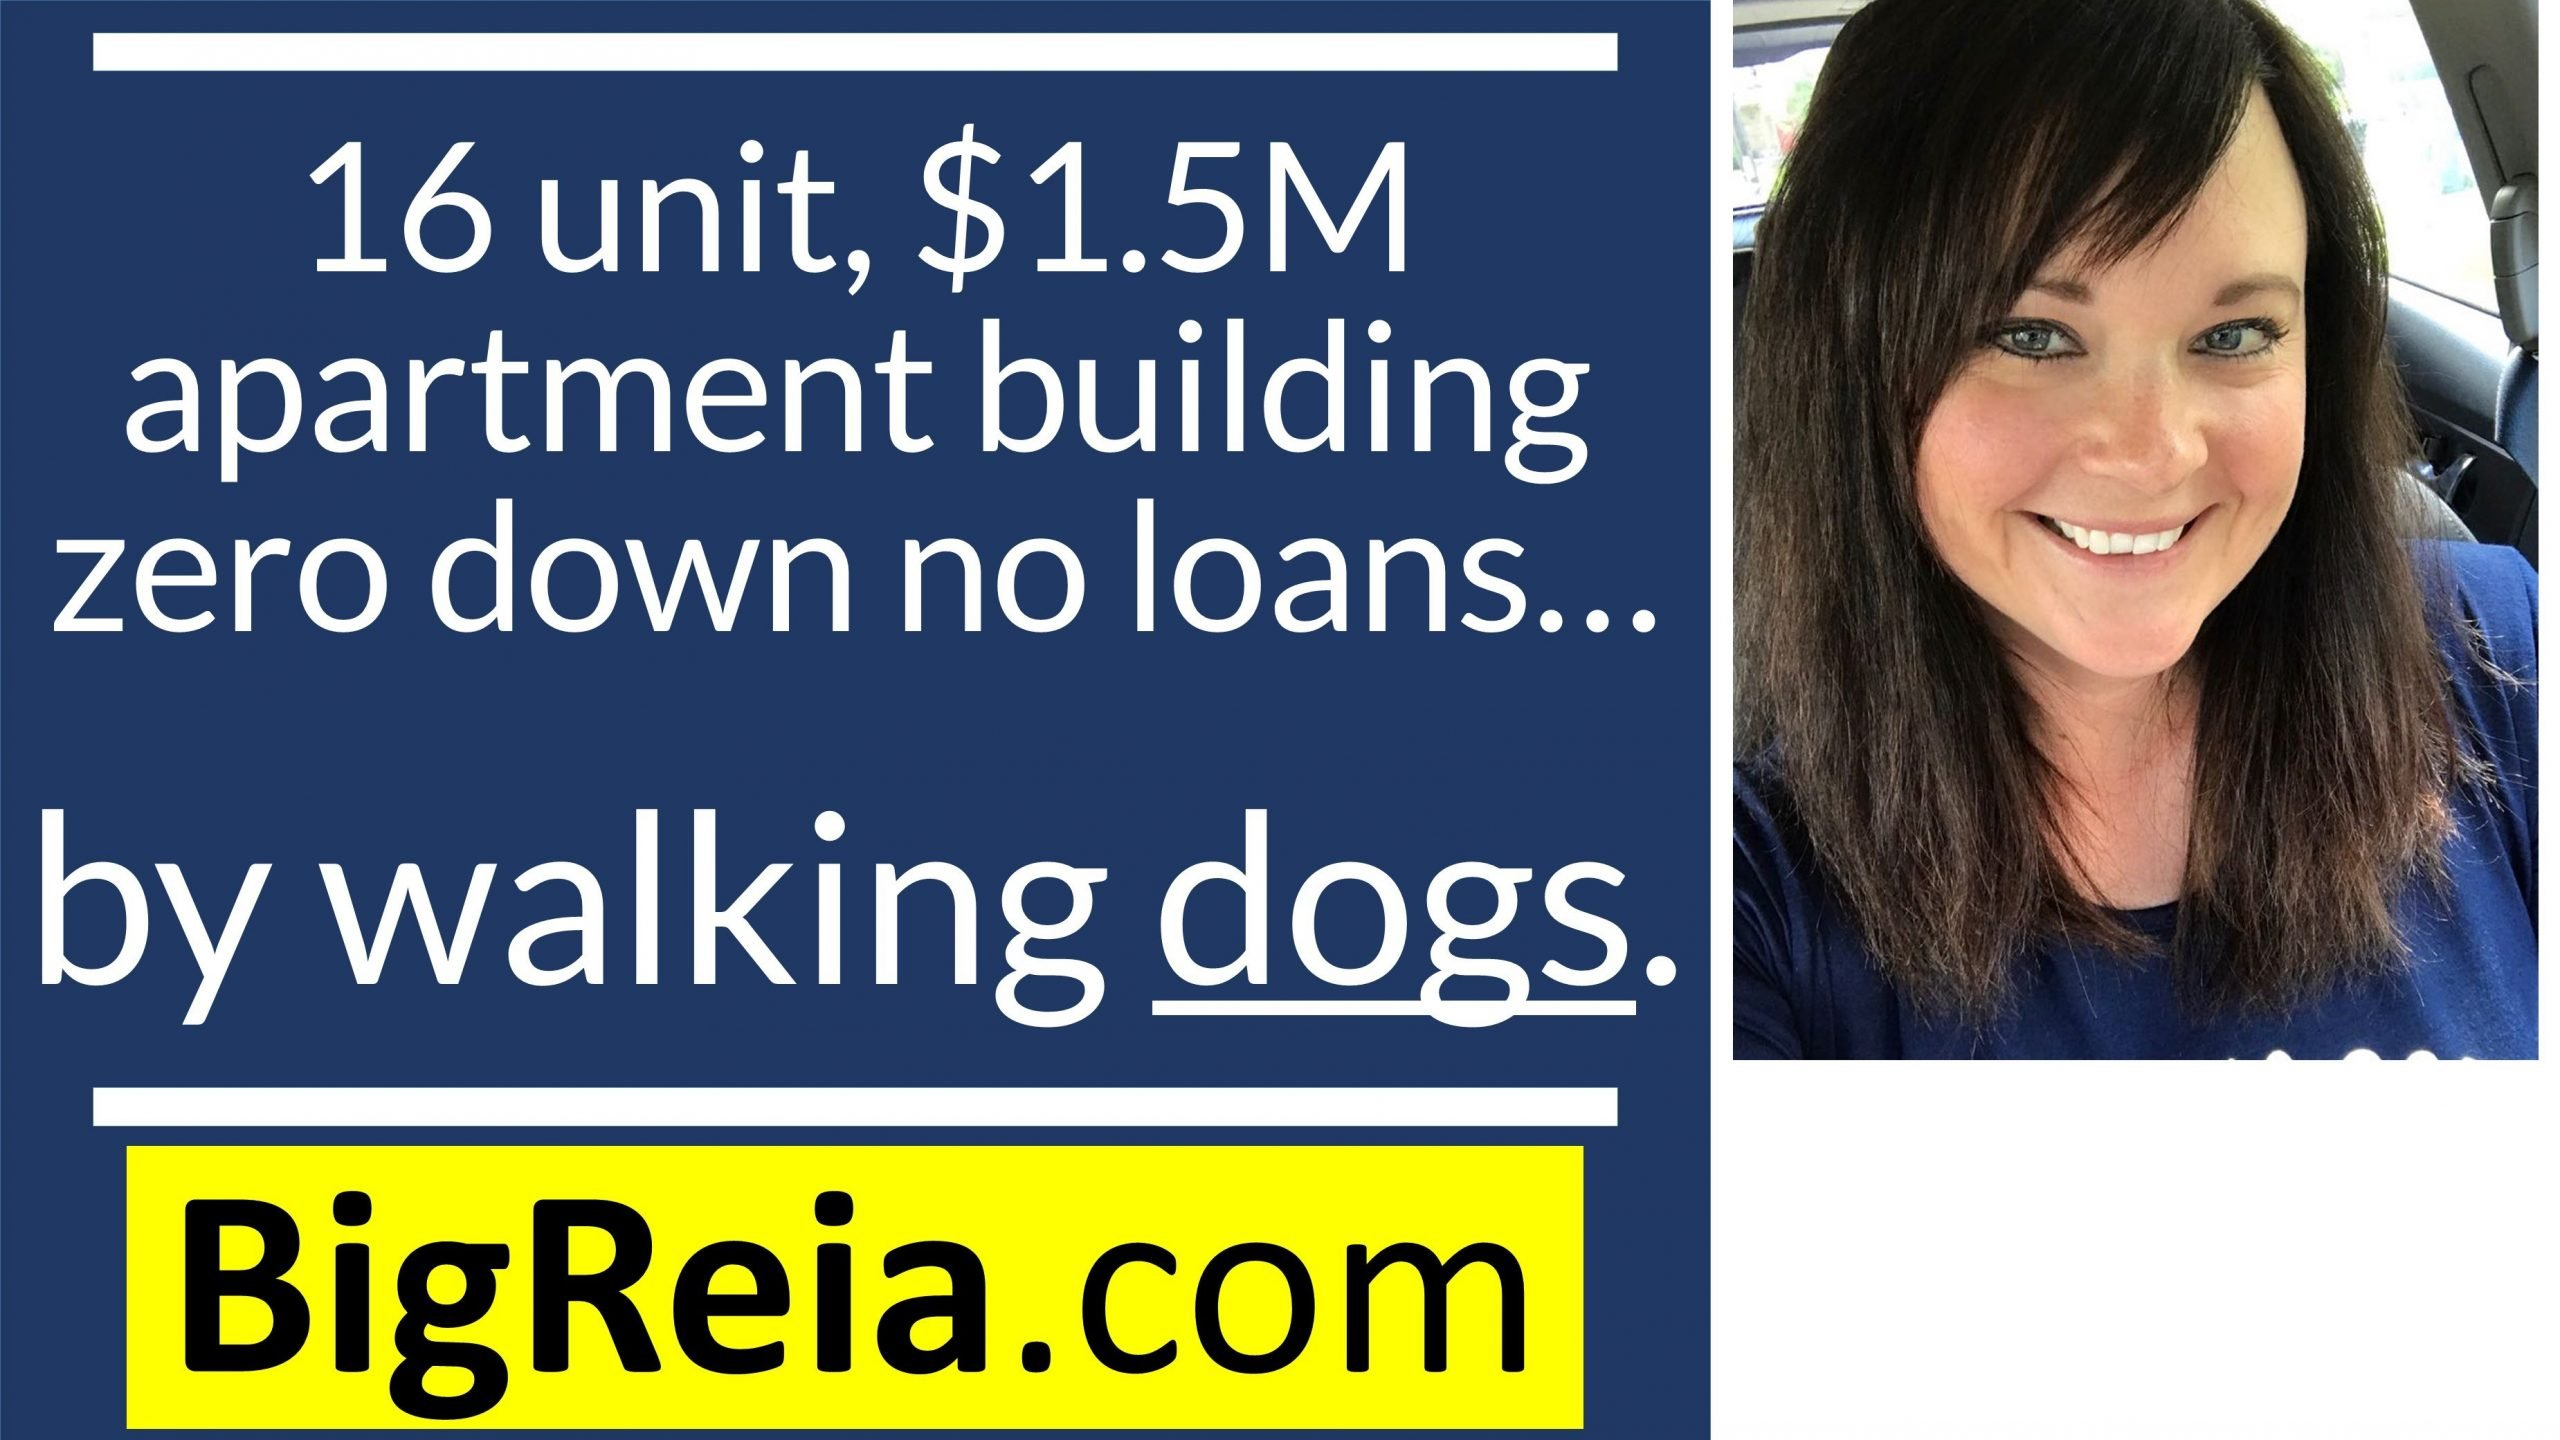 How I got a 16 unit, $1.5M apartment building zero down by walking a few dogs and pet policies lol.